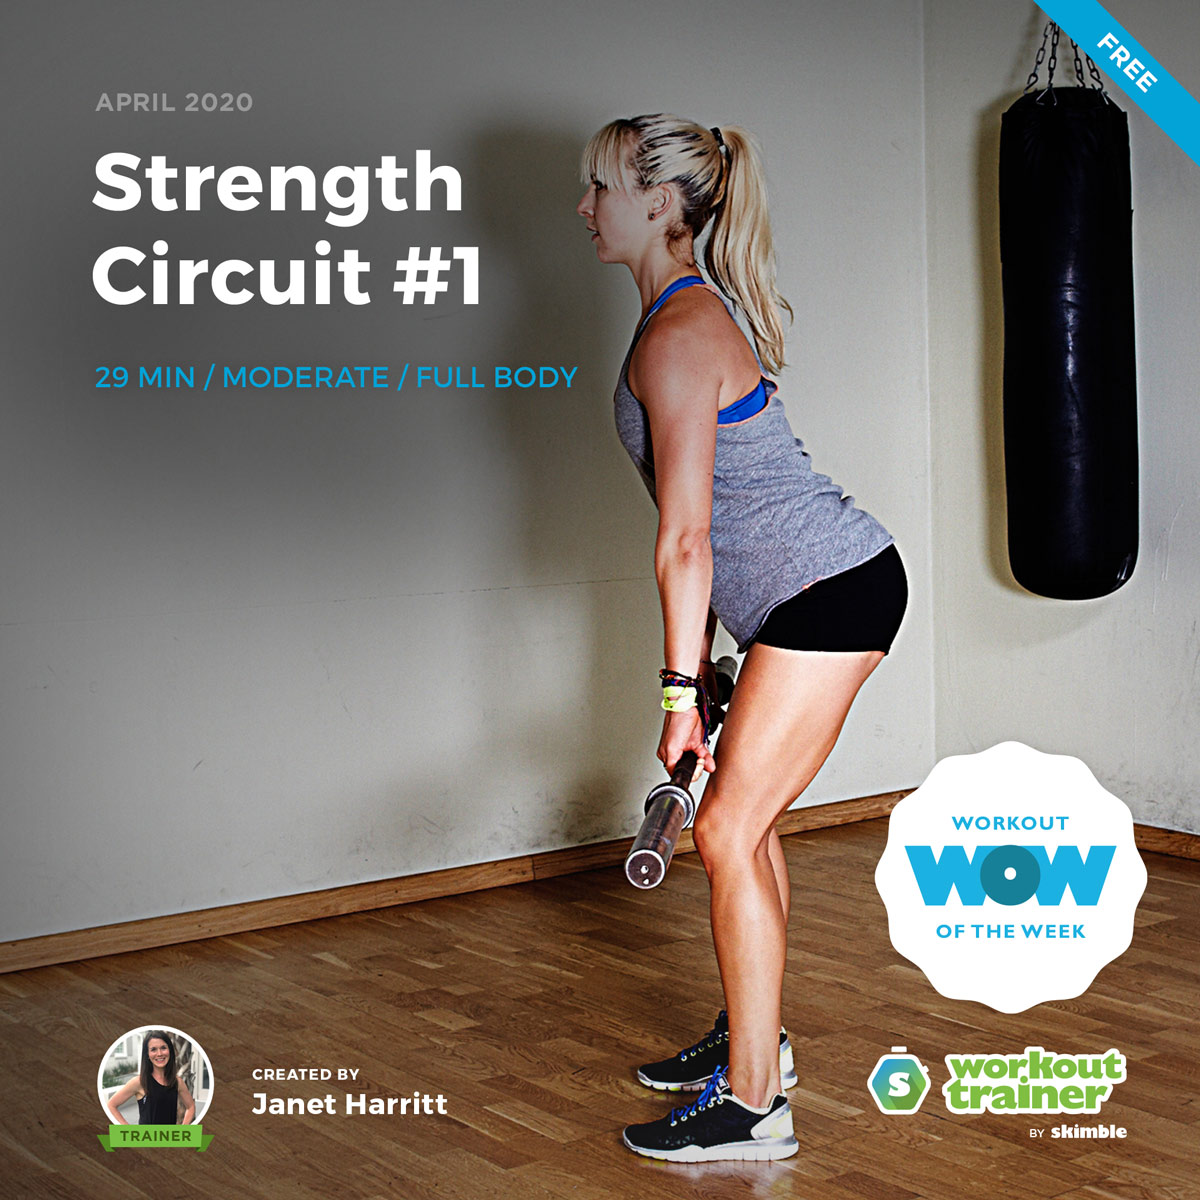 Workout Trainer by Skimble: Free Workout of the Week: Strength Circuit #1 by Janet Harritt